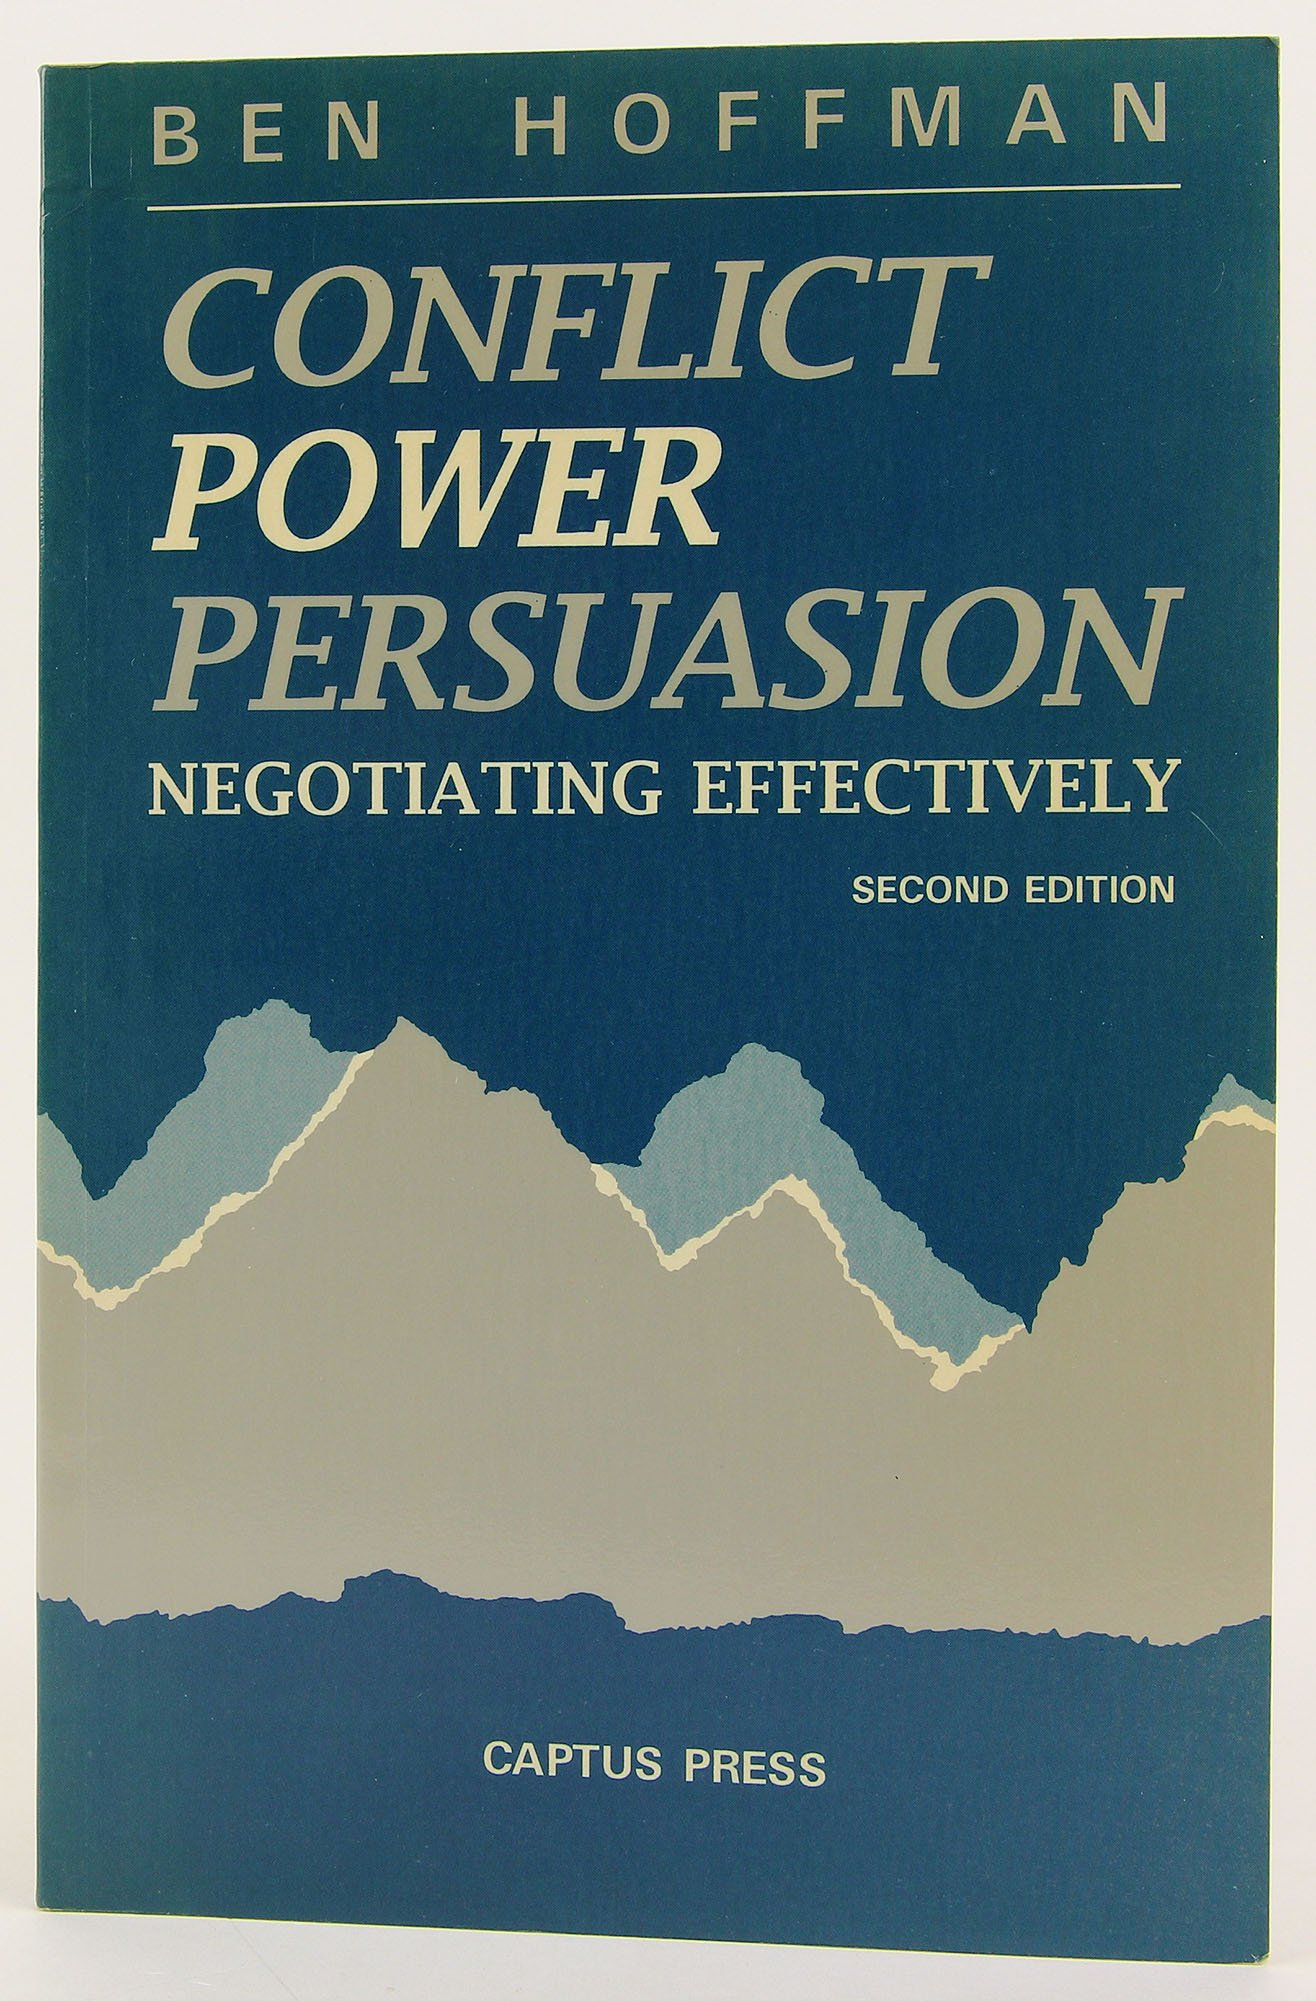 Download CONFLICT, POWER, AND PERSUASION: NEGOTIATING EFFECTIVELY